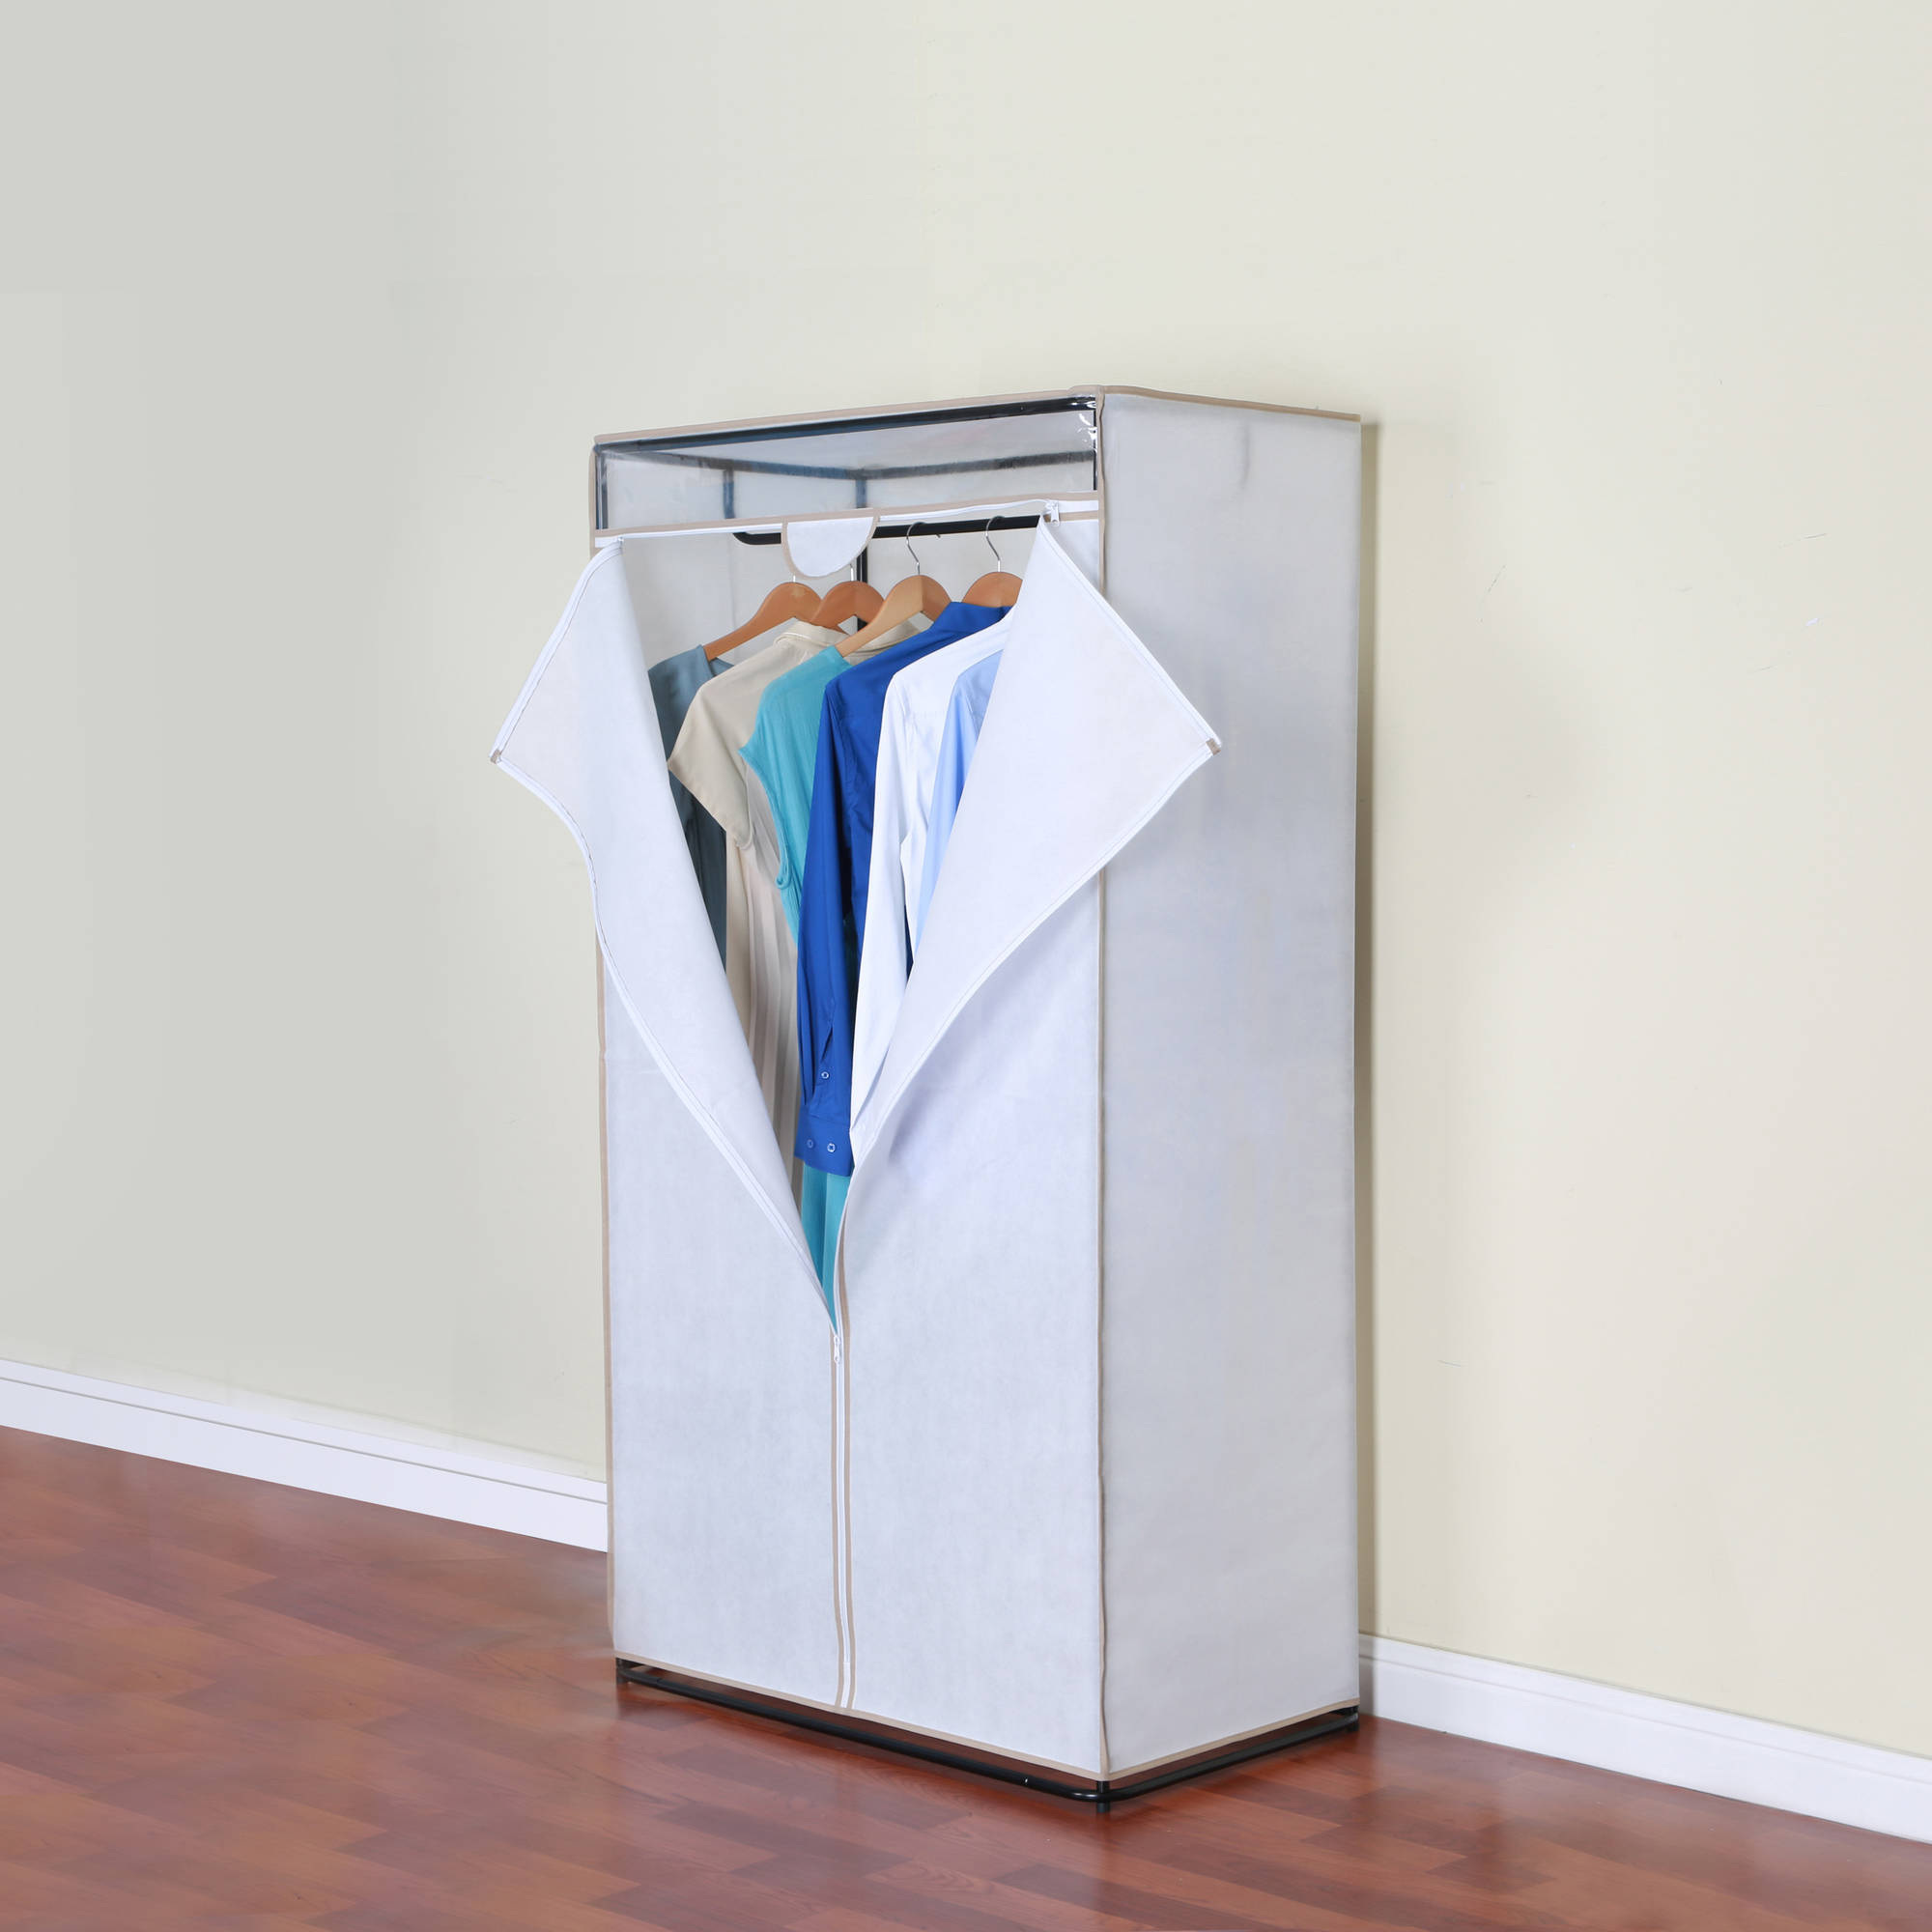 Mainstays 36 clothes closet organizer with cover and hanging bar